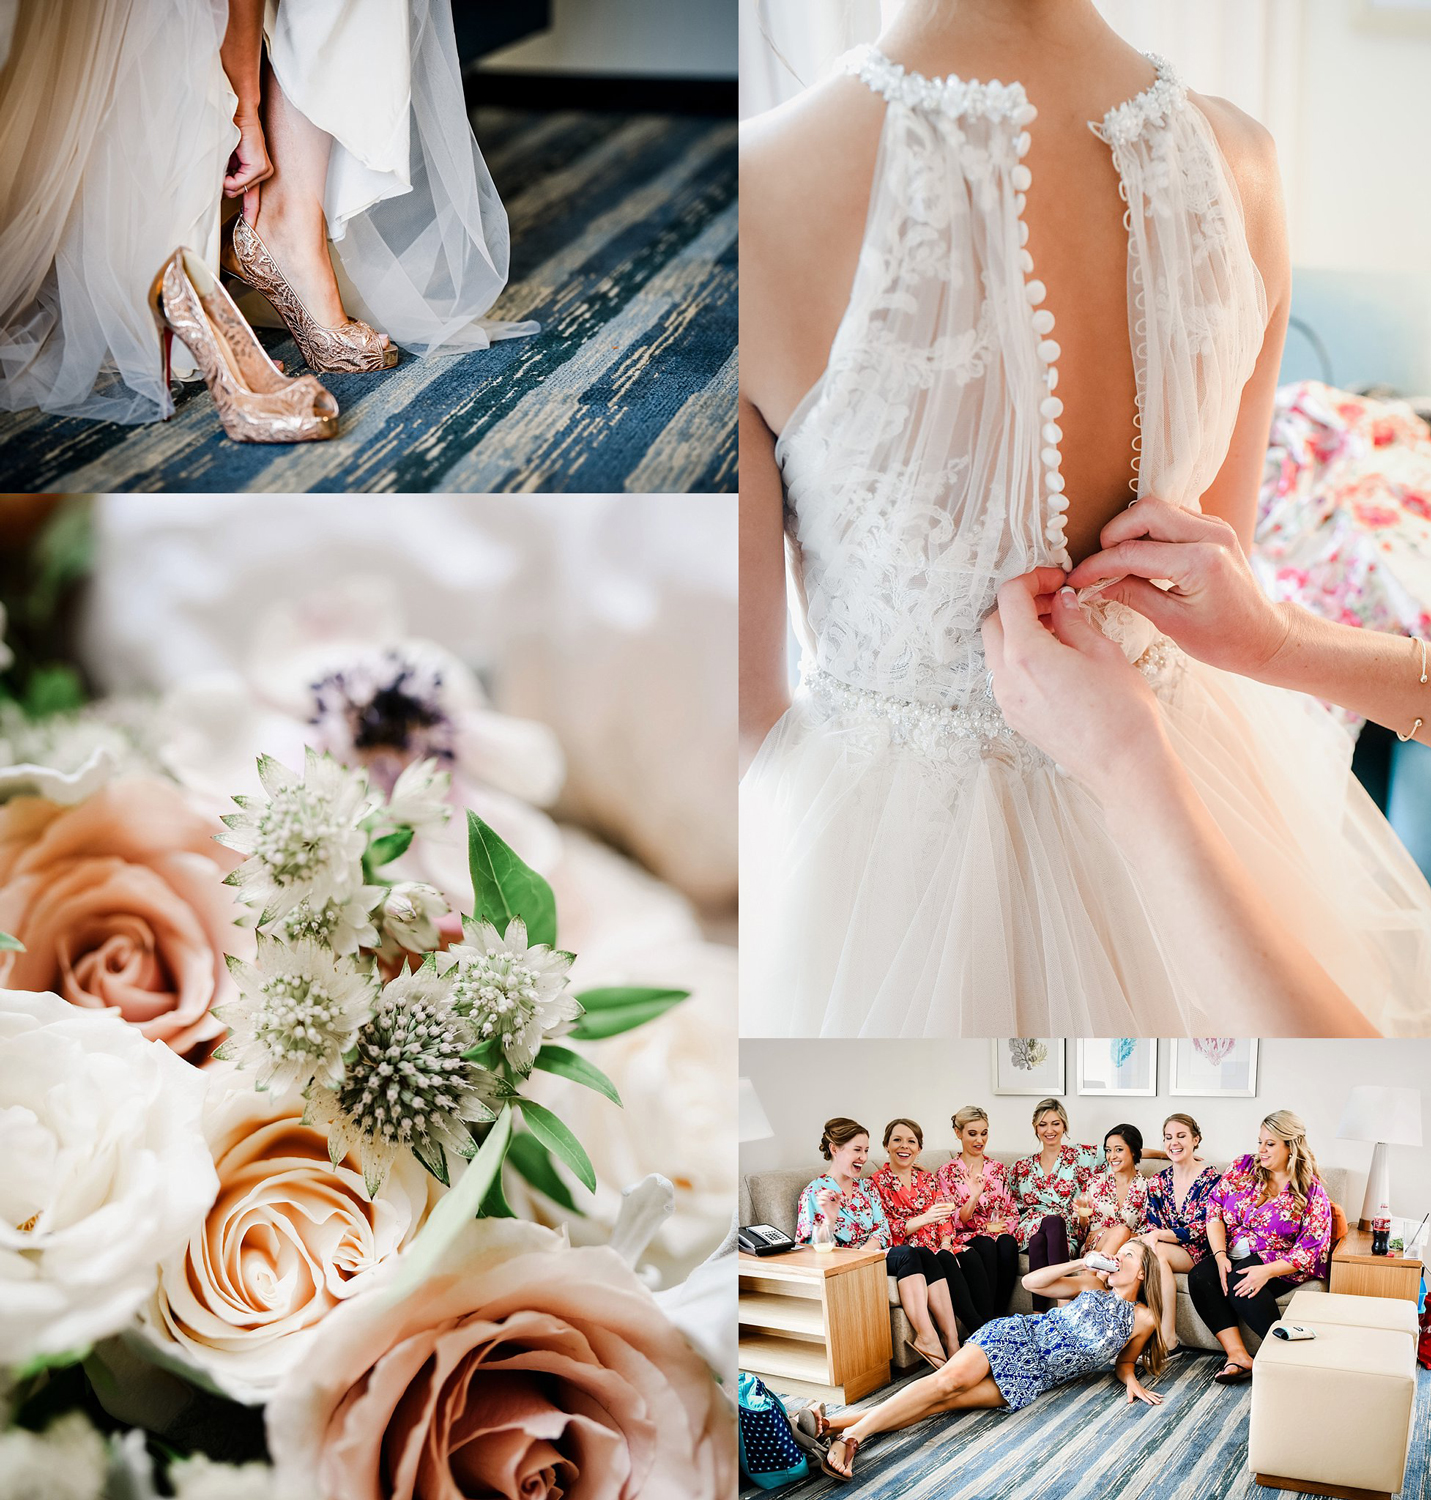 virginia-weddingphotographer-melissa-bliss-photography-va-beach-hyatt-house-wedding.jpg